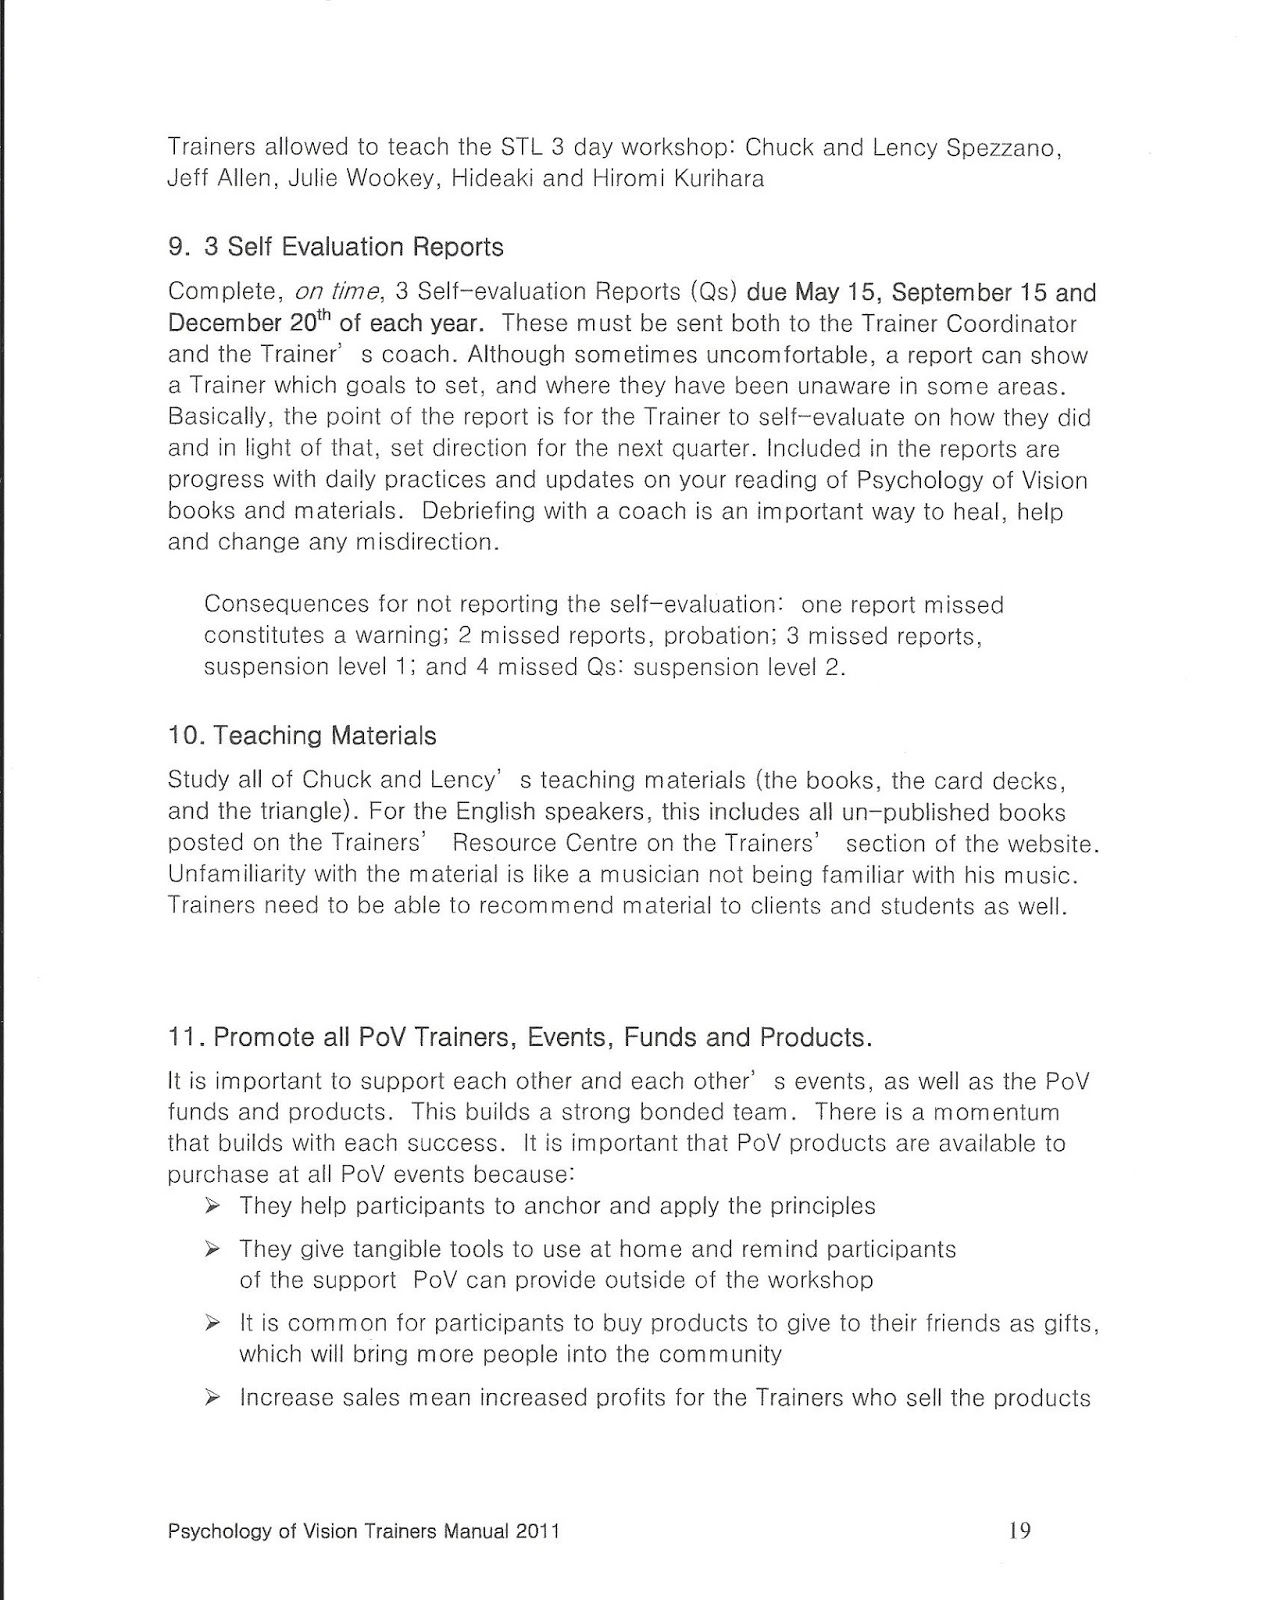 Documents about spezzano and associates ltd psychology of vision this document was removed from public view by spezzano and associates psychology of vision ltd in may 2014 fandeluxe Gallery